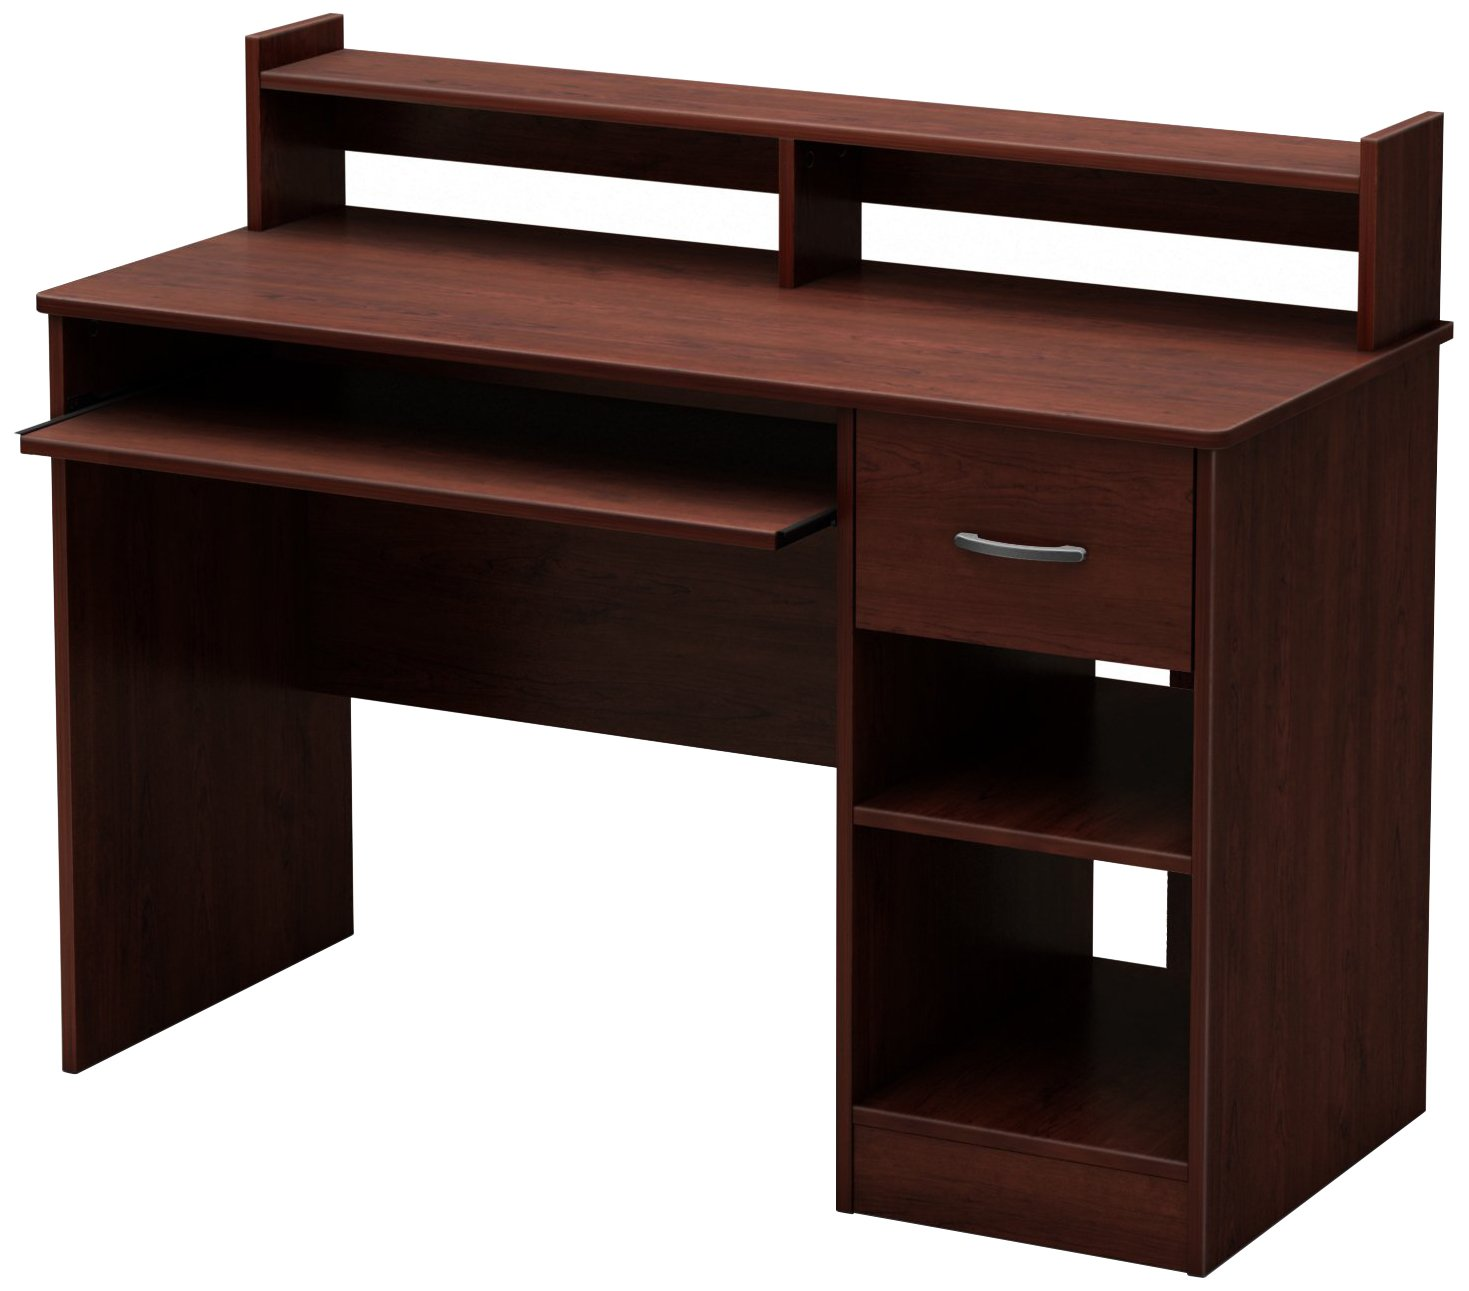 South Shore 7246076 Axess Desk with Keyboard Tray, Royal Cherry by South Shore